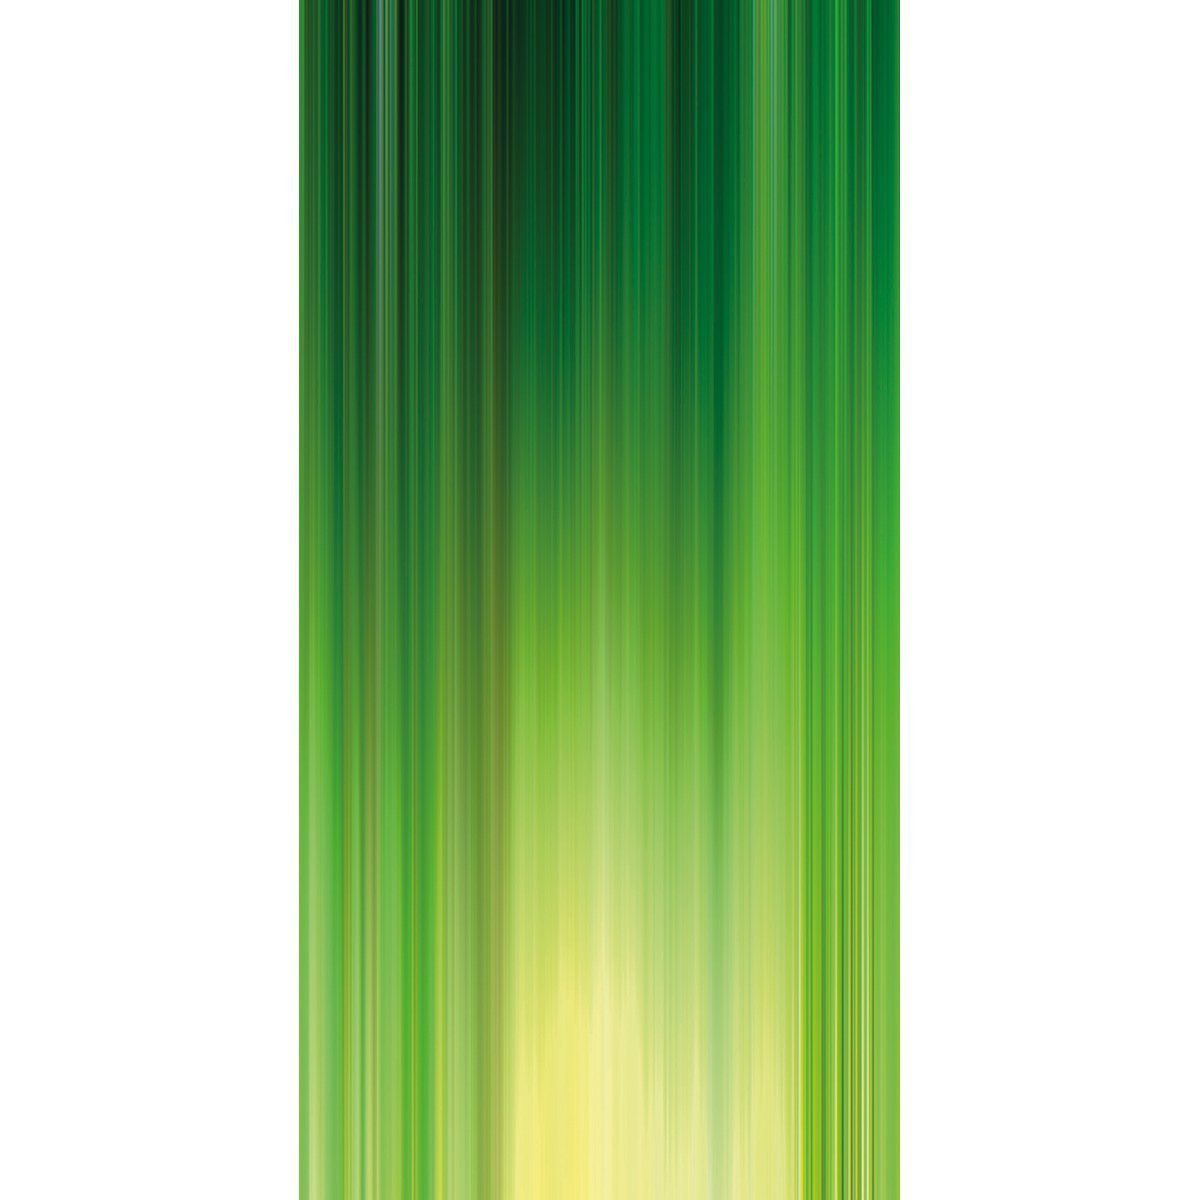 Wall Acoustics Panel 5 Muffle Abstract Mural - Kinetic Green Panel 5